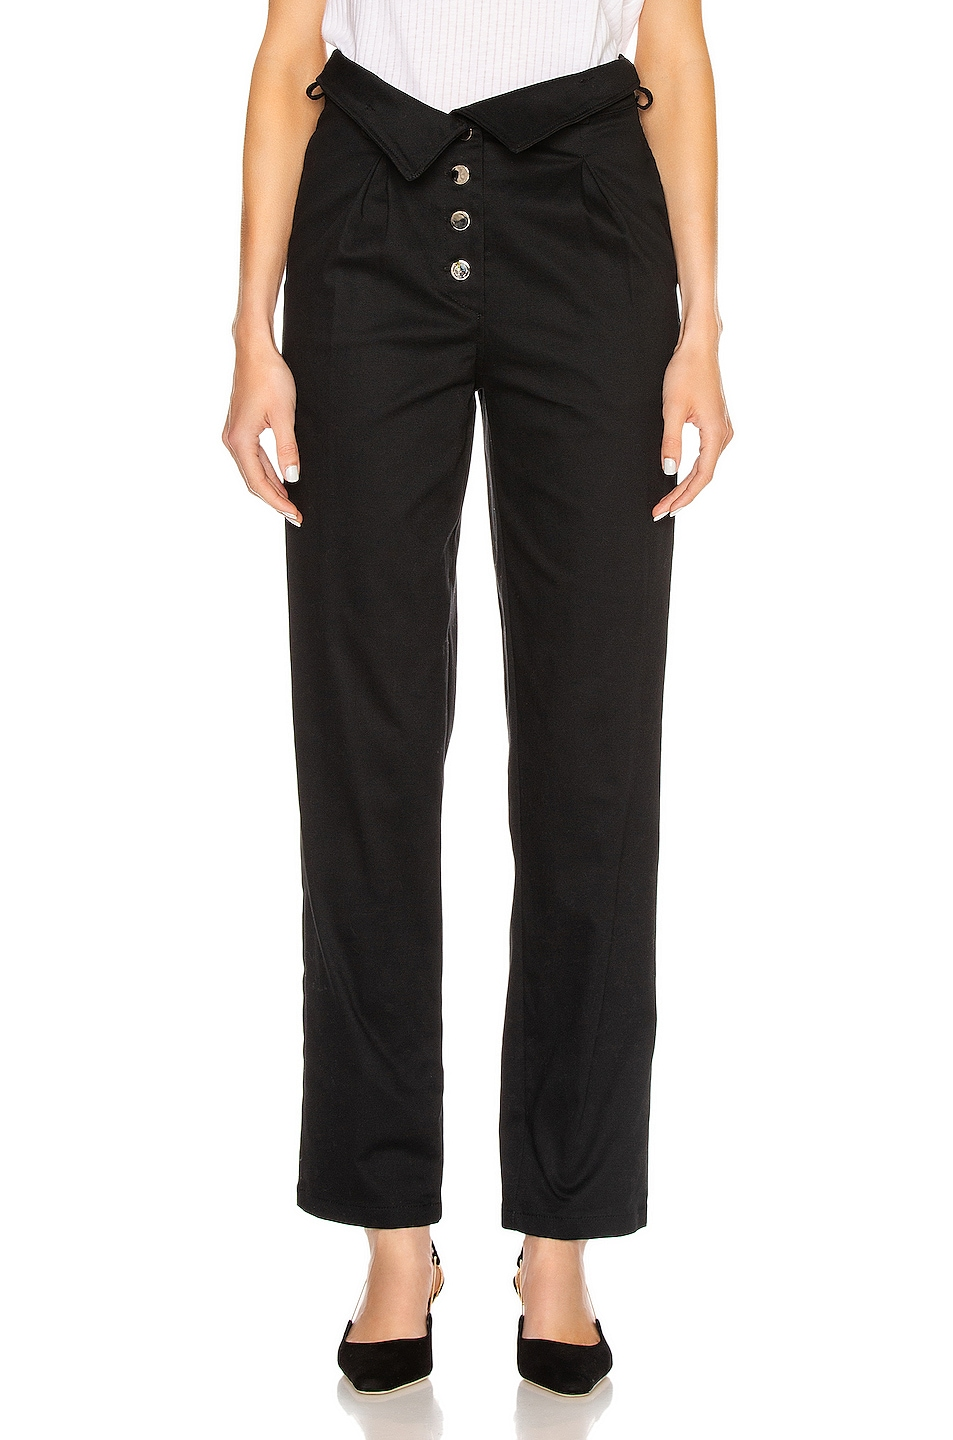 Image 2 of The Range Structured Twill Belted Paperbag Pants in Black